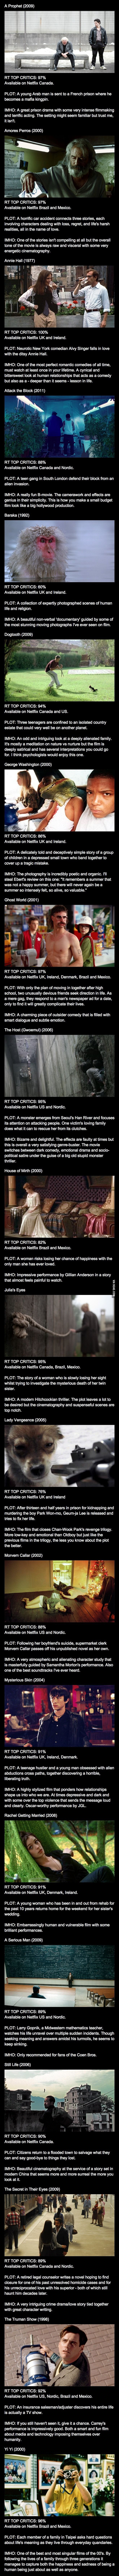 194 best movies images on Pinterest